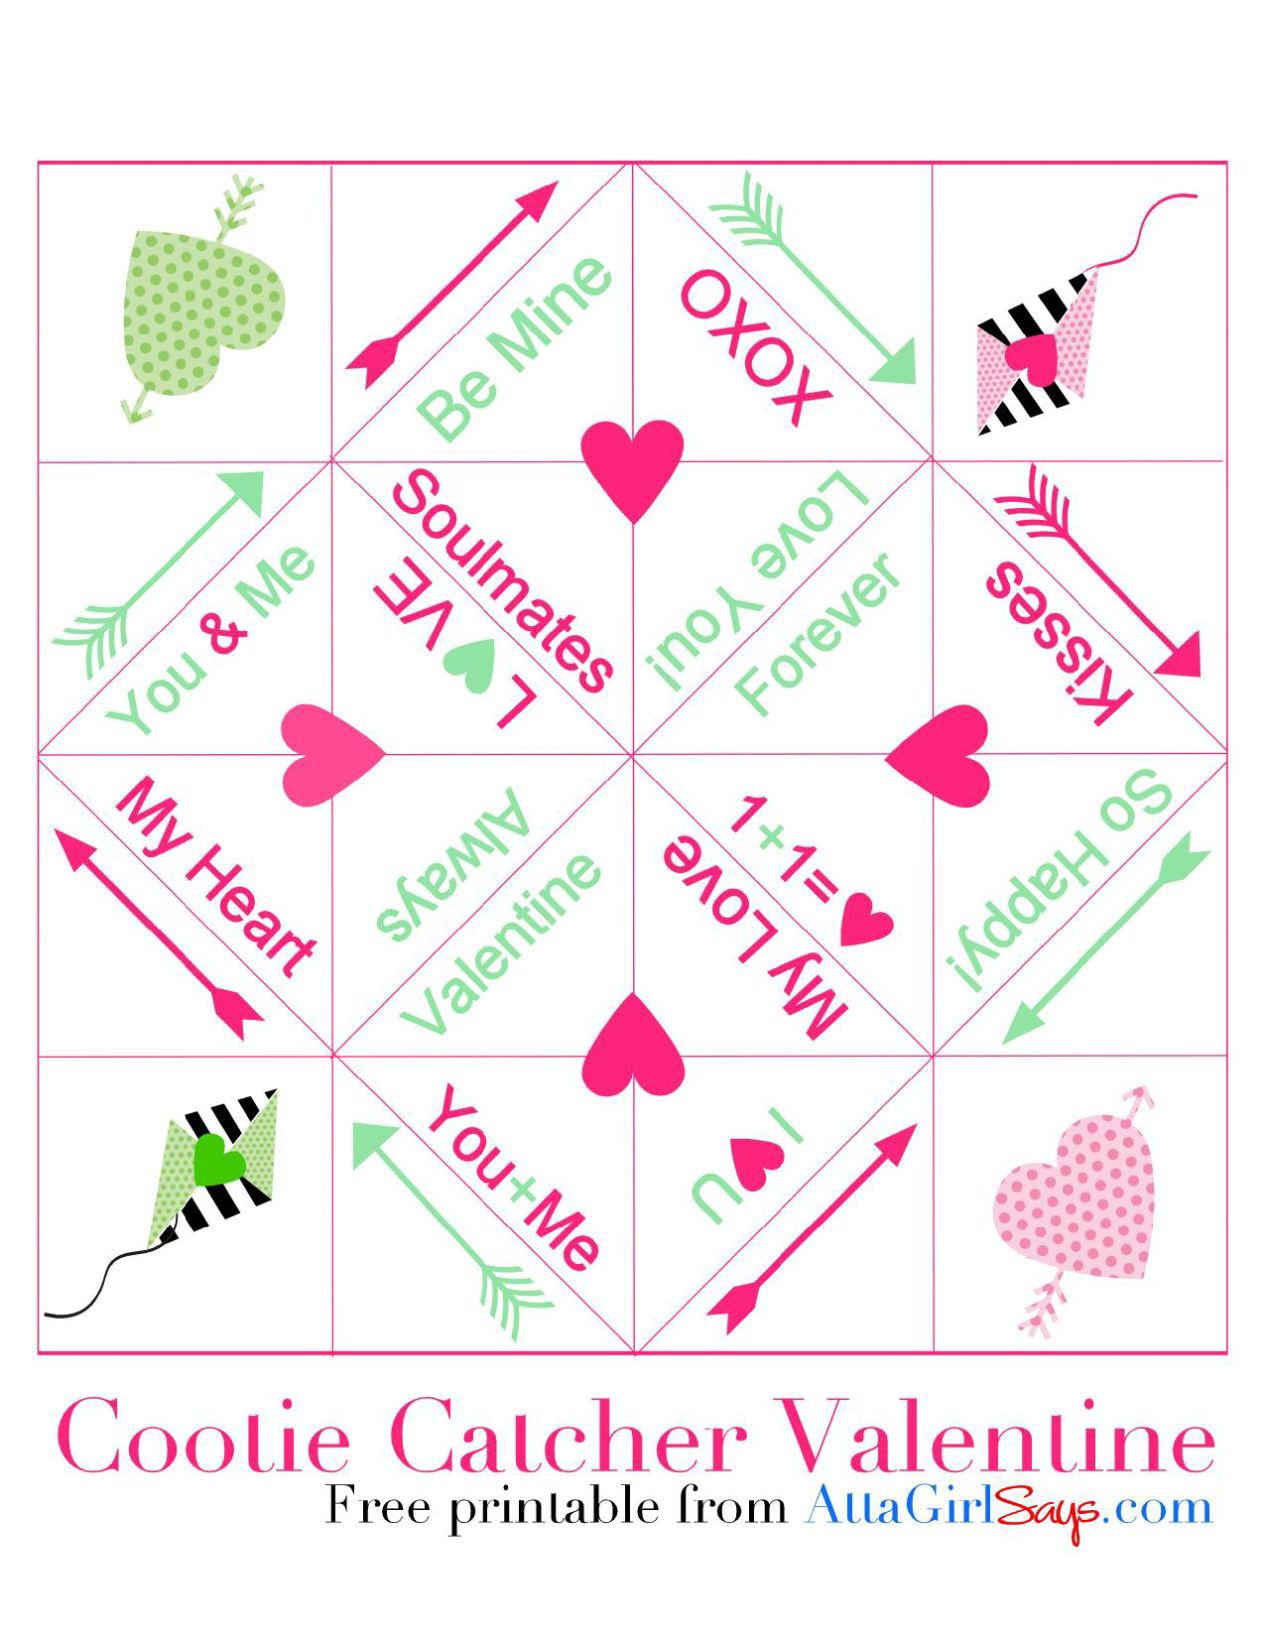 image about Printable Cootie Catcher named printable-valentine-cootie-catcher.pdf